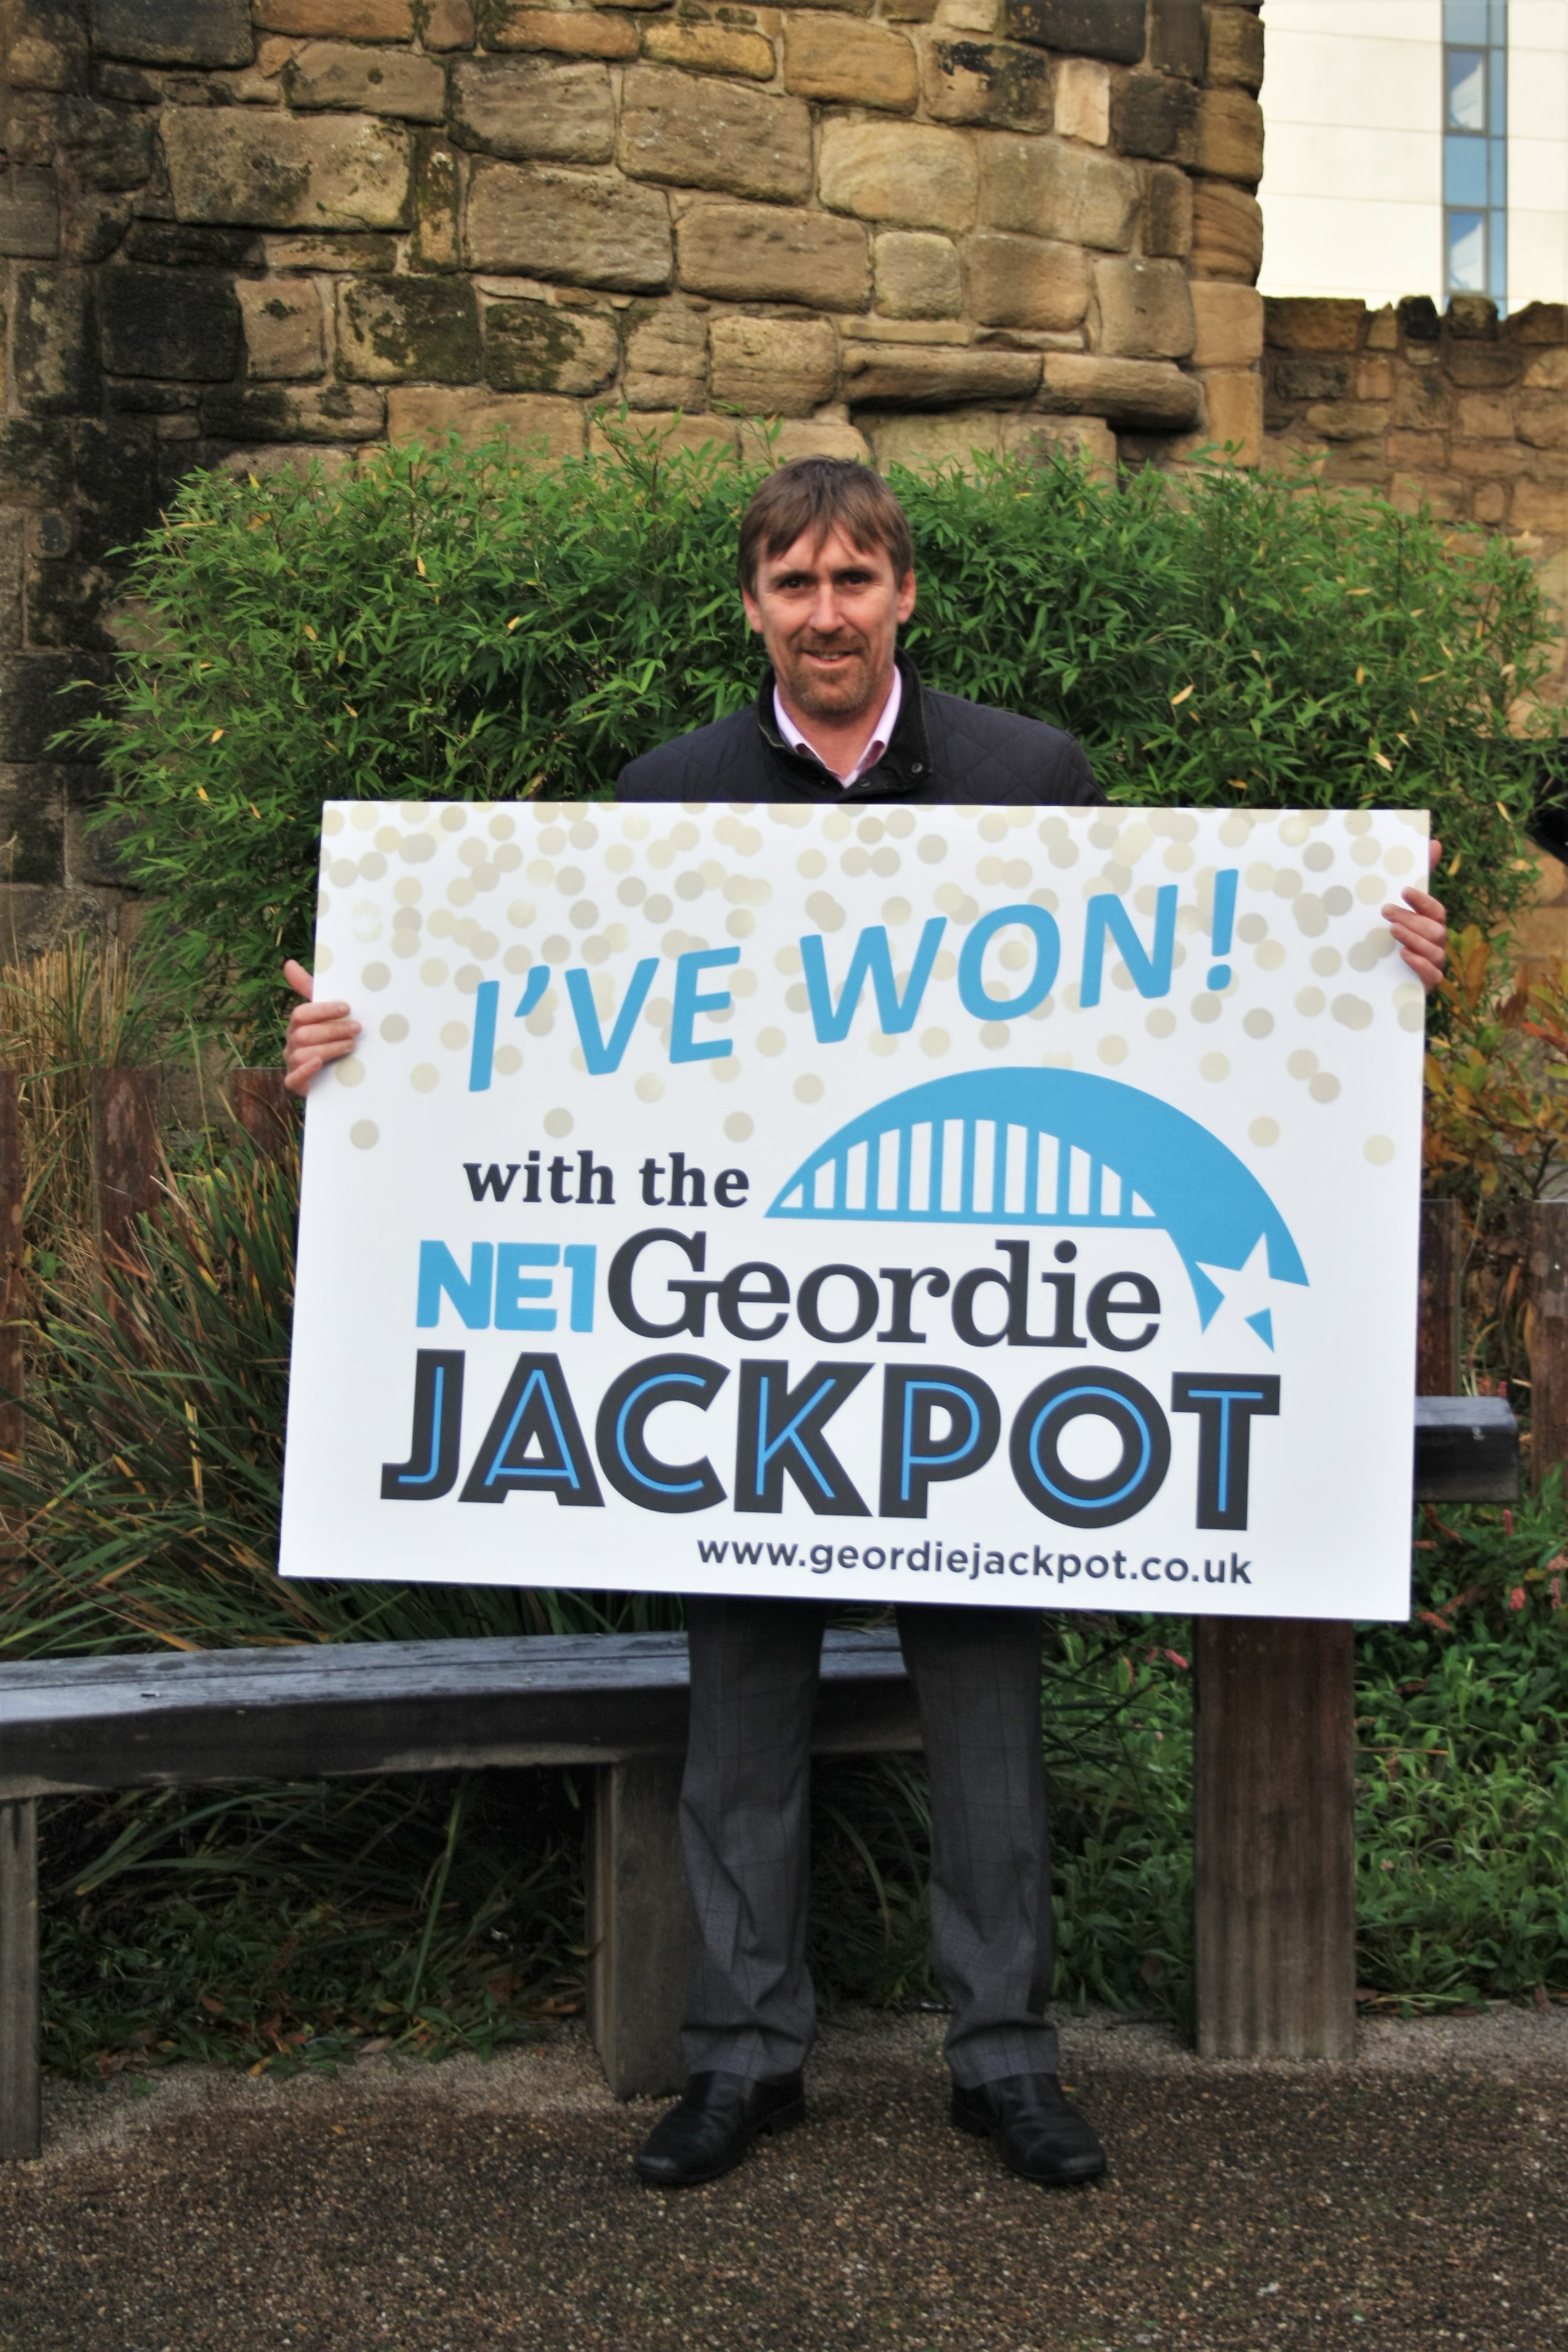 Wallsend wins in the Geordie Jackpot stakes